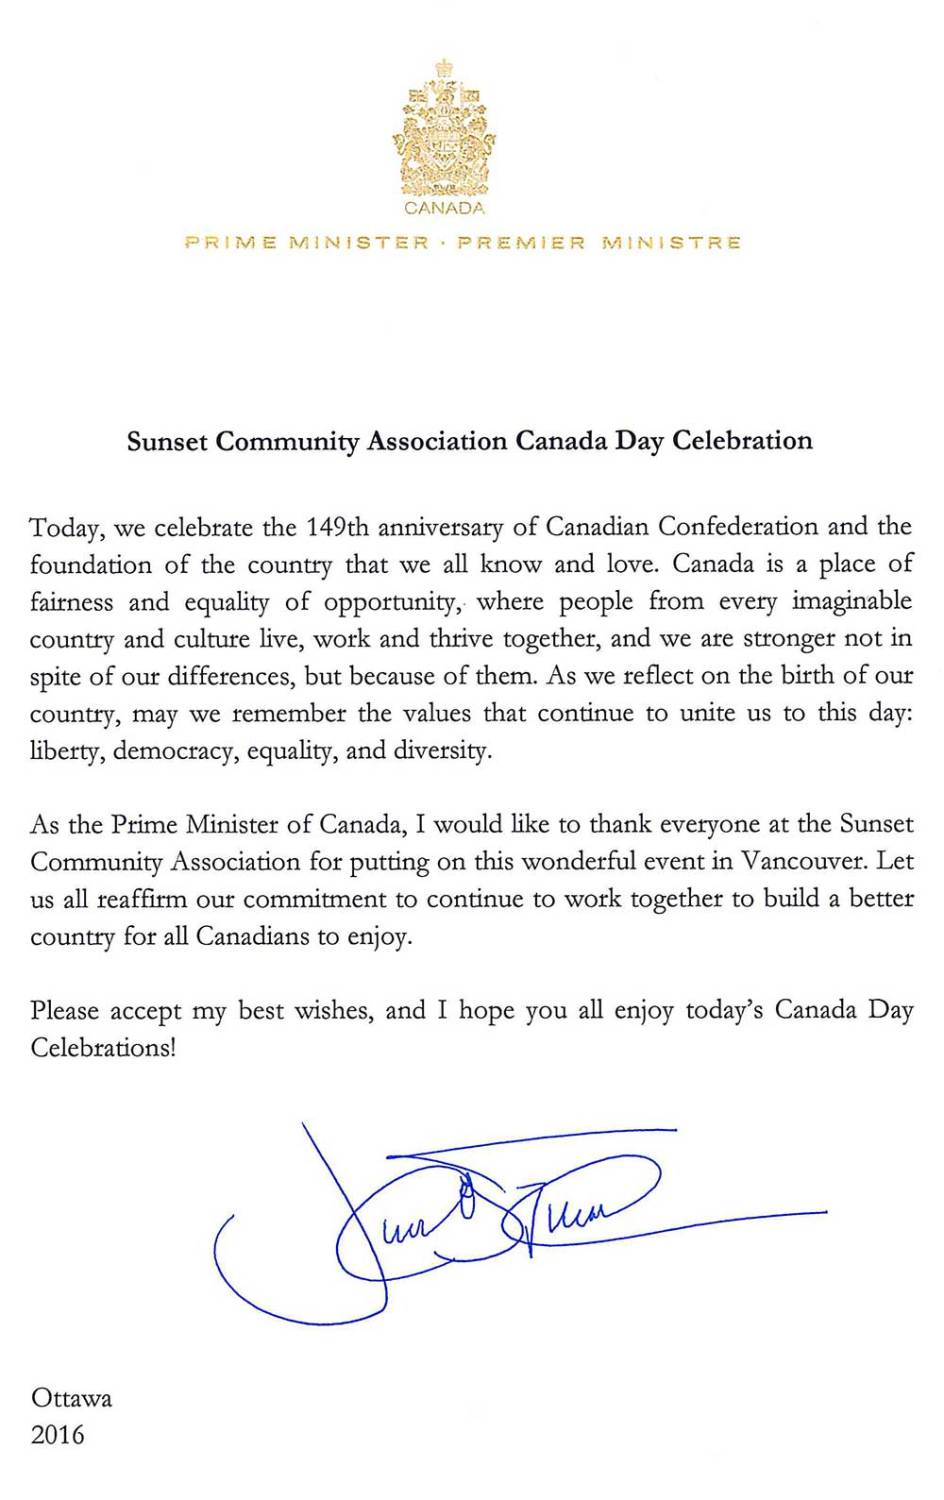 Prime Minister Justin Trudeau Thanks Sunset Community Assocation for Canada Day Celebration Event